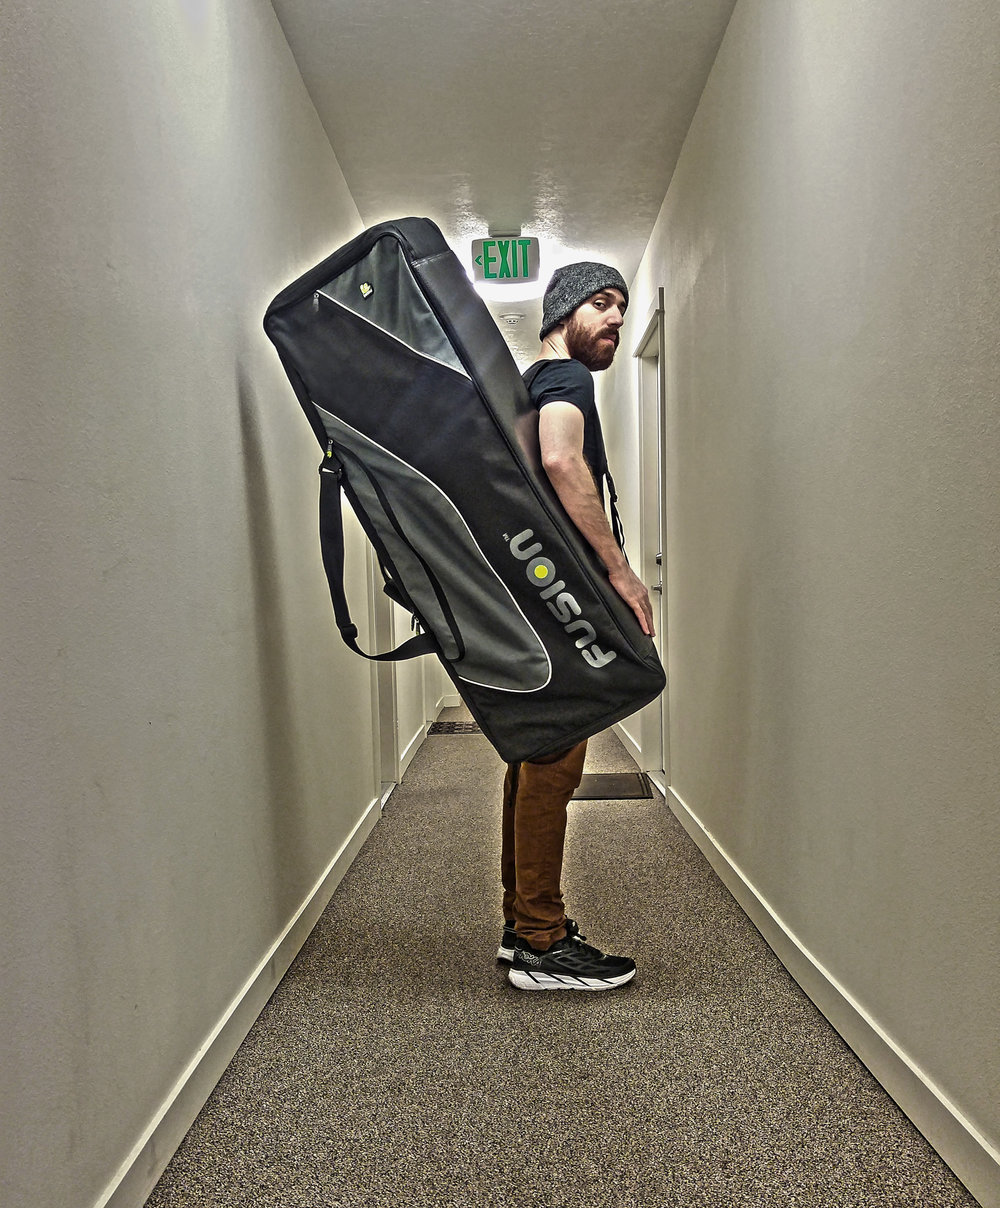 GLASYS with the Fusion Keyboard 06 gig bag.